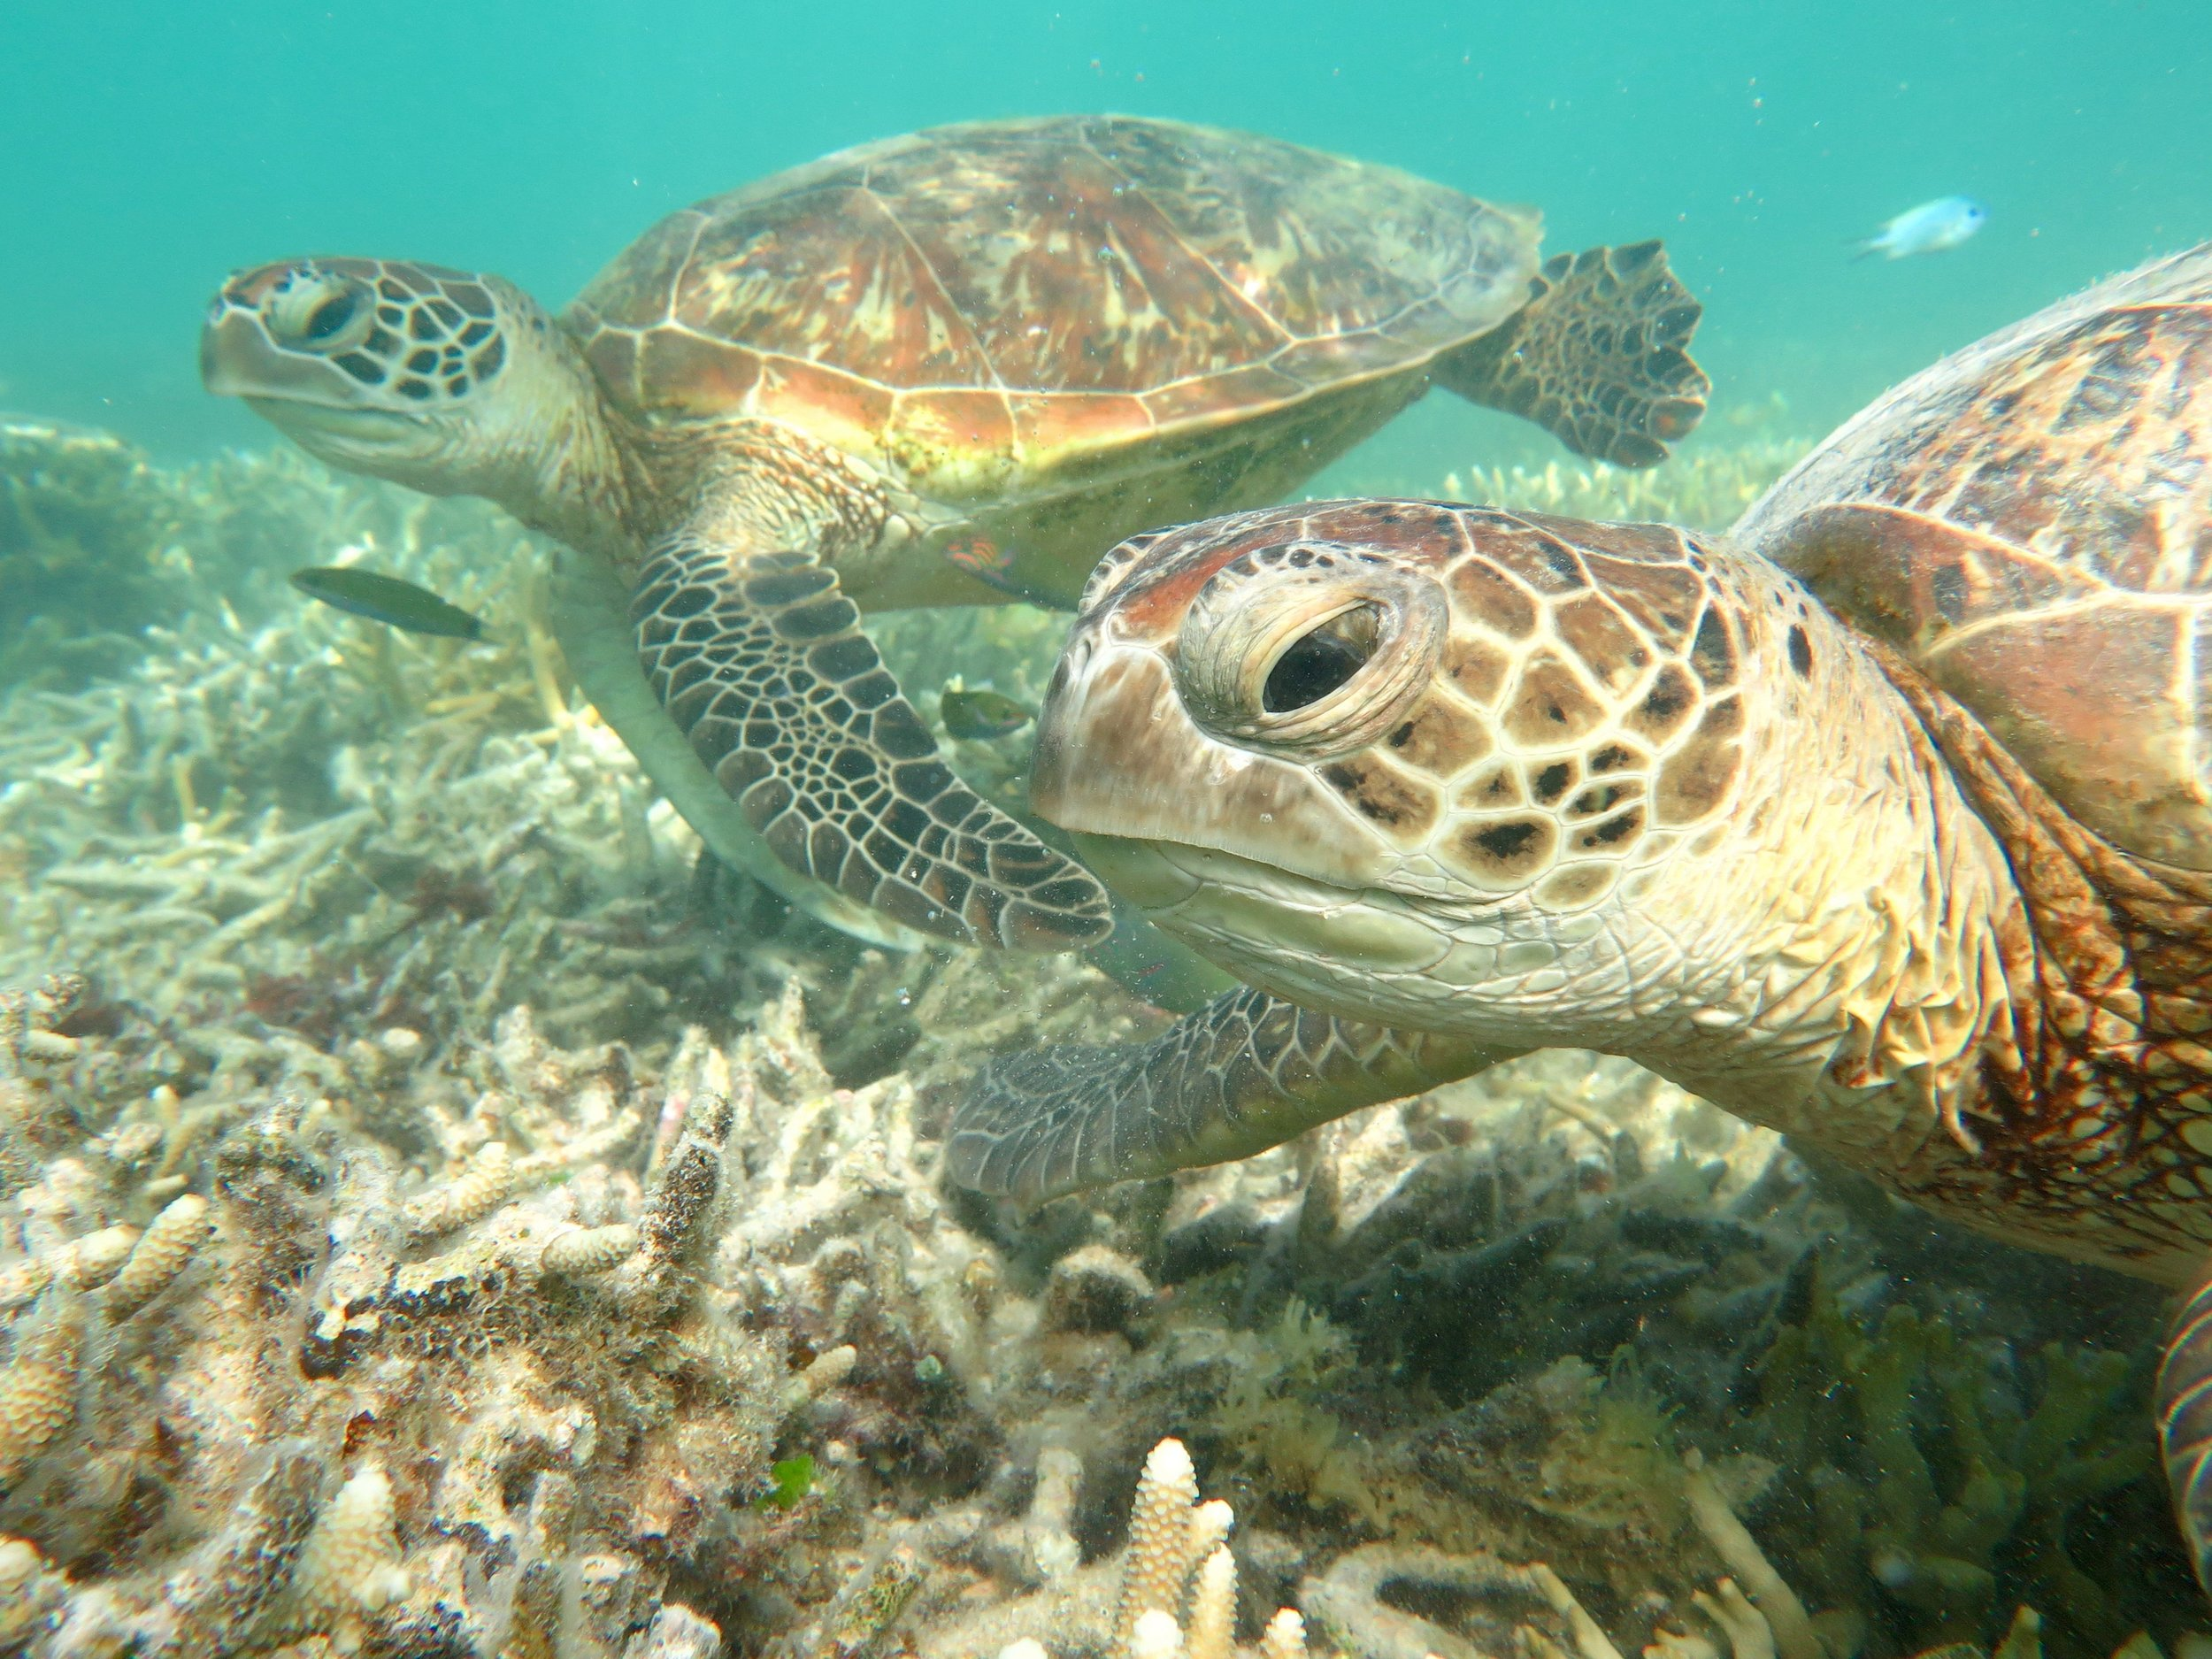 The green sea turtle is one marine species that fills their stomach with plastic bags resembling jellyfish.  Image: Cathy Cavallo